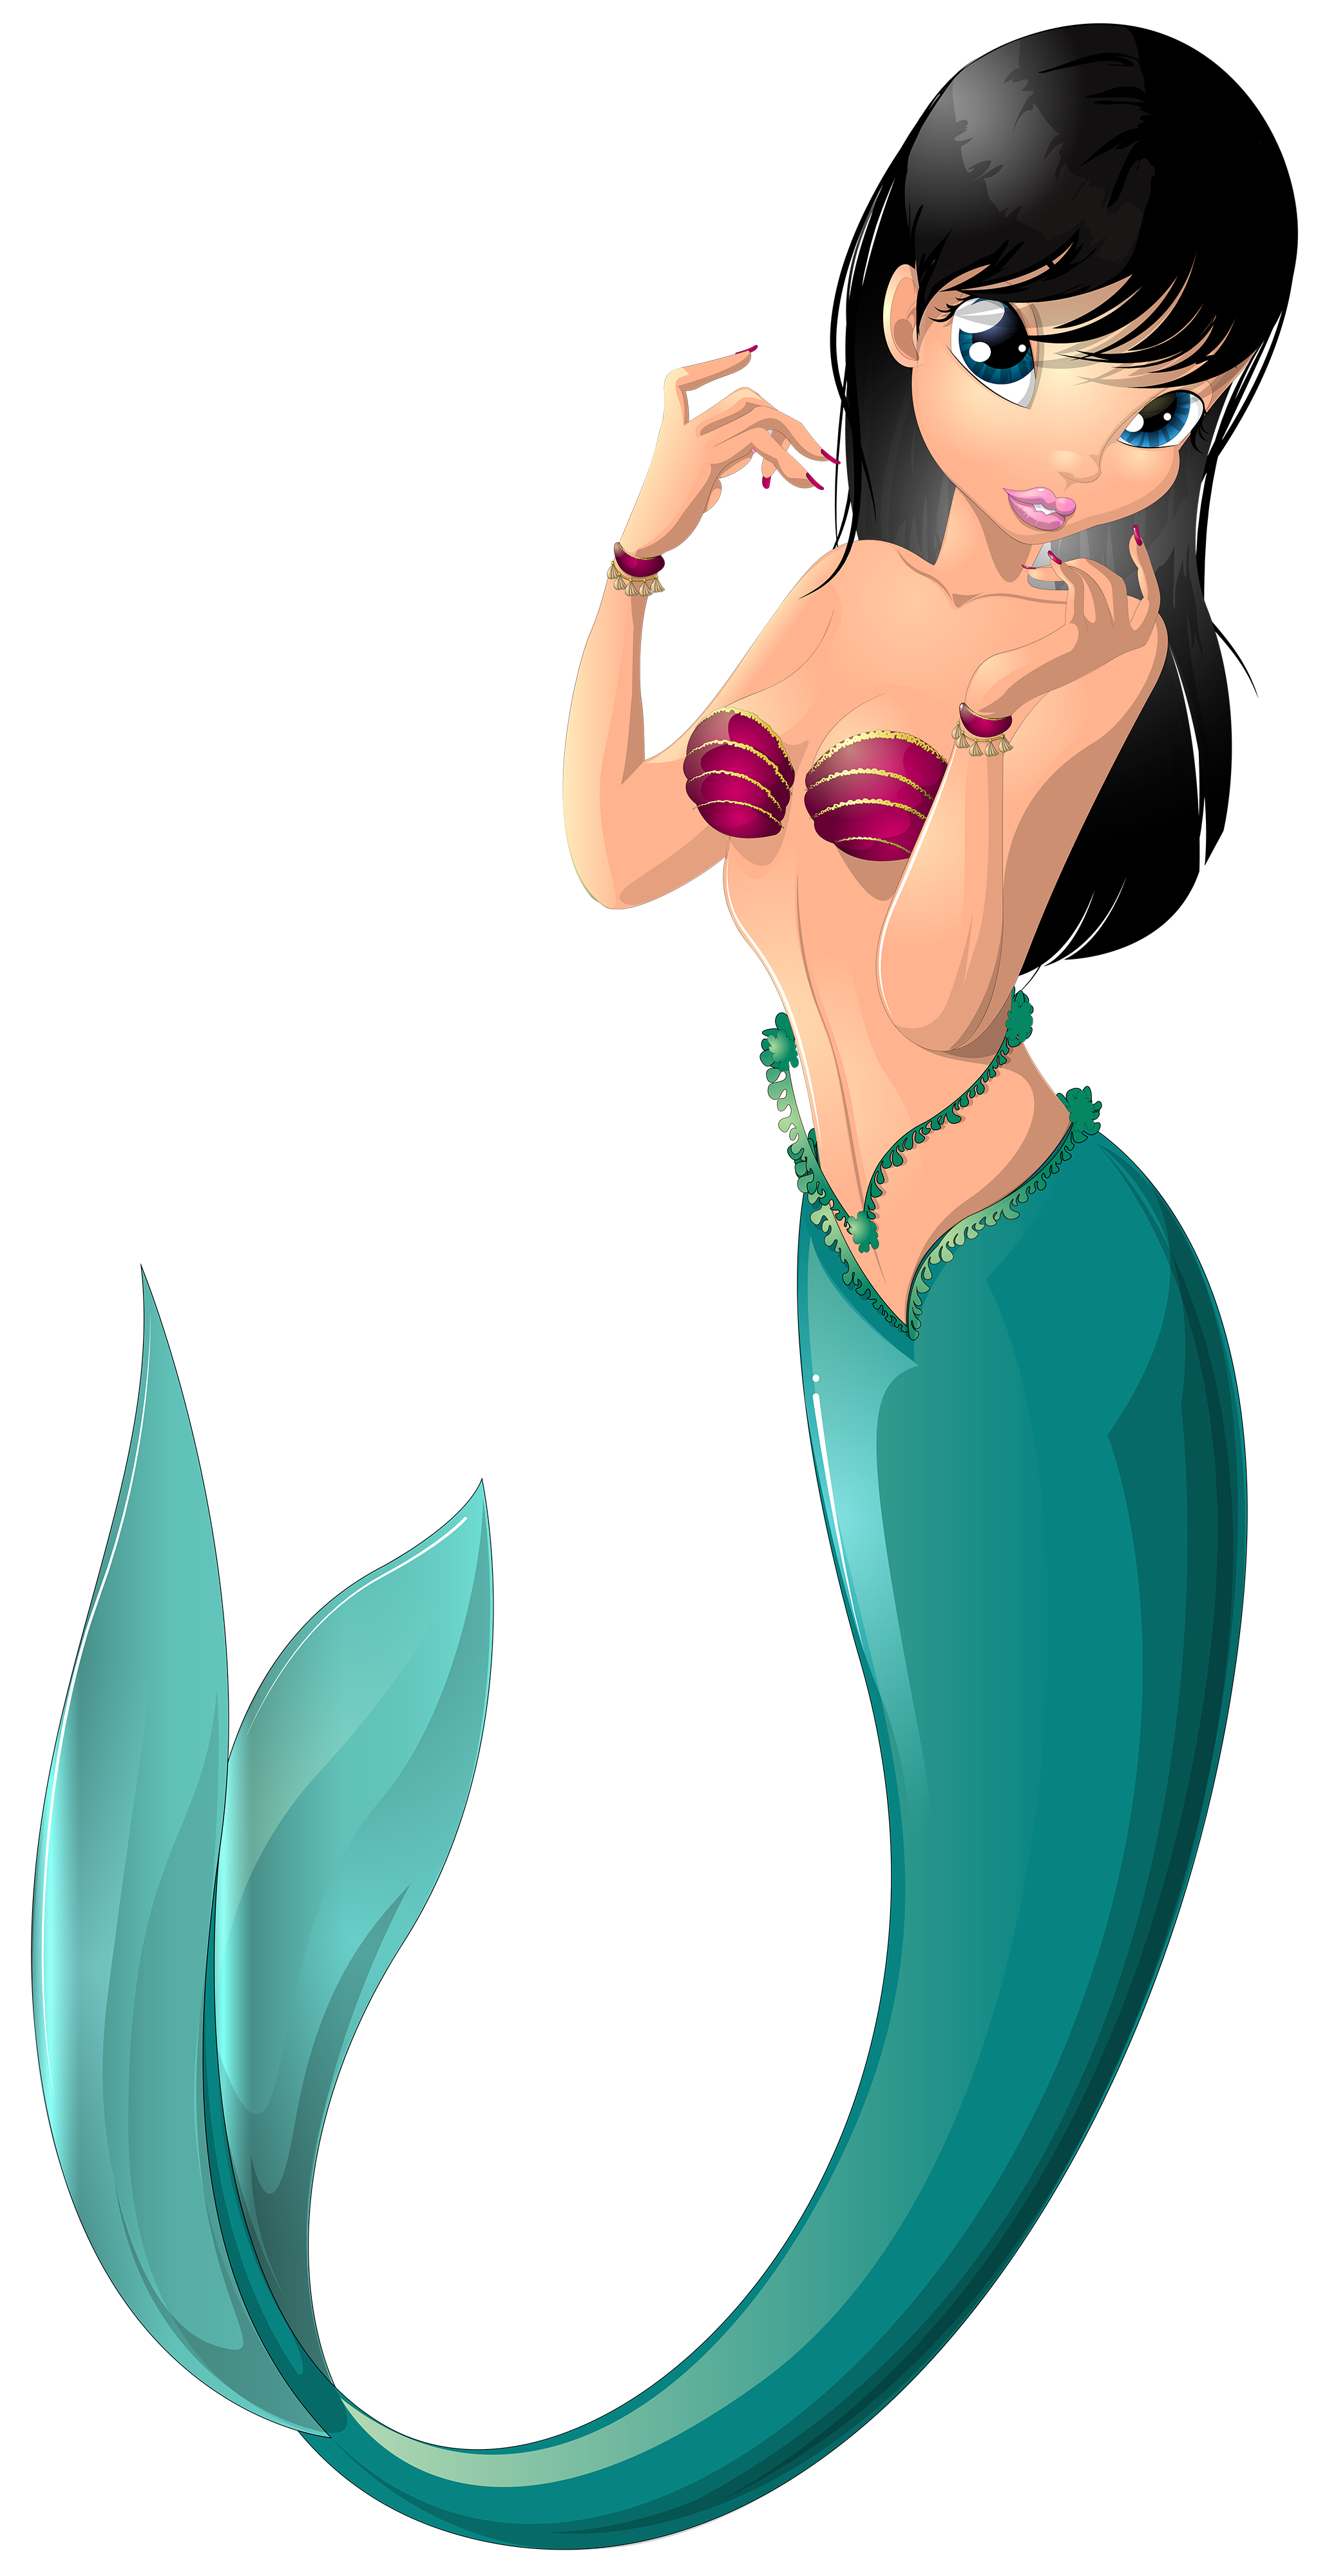 Png clip art image. Number 1 clipart mermaid